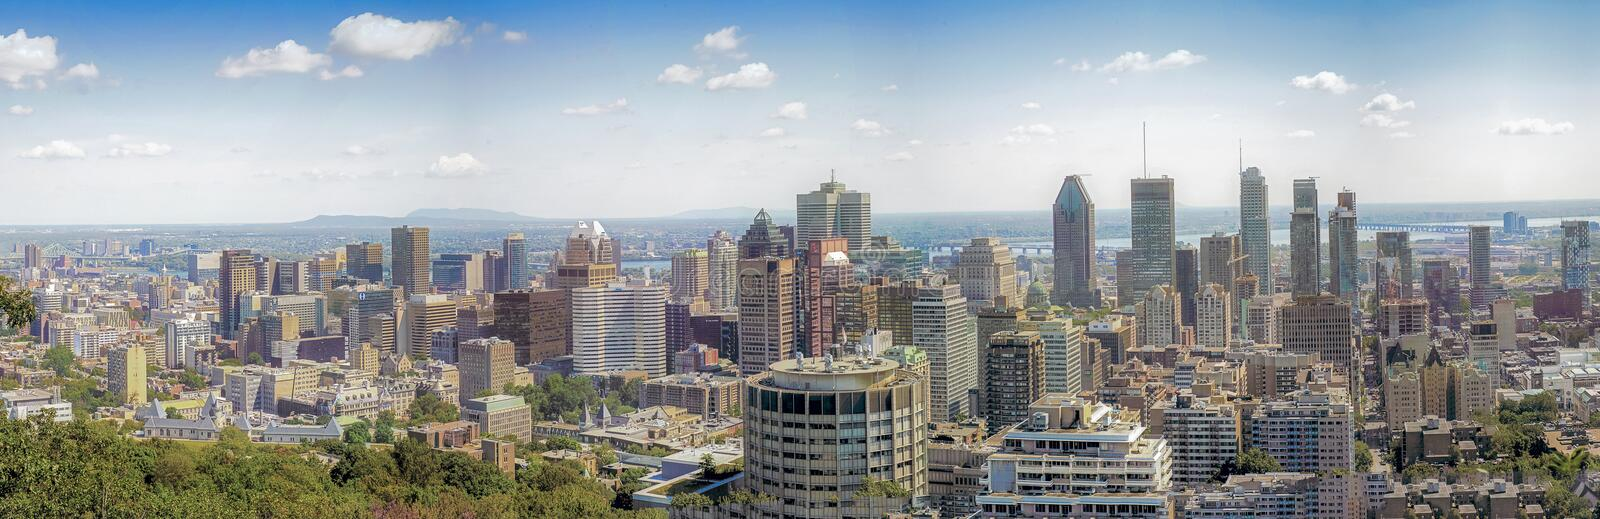 A birds eye view of central Montreal from Mont Royal stock images